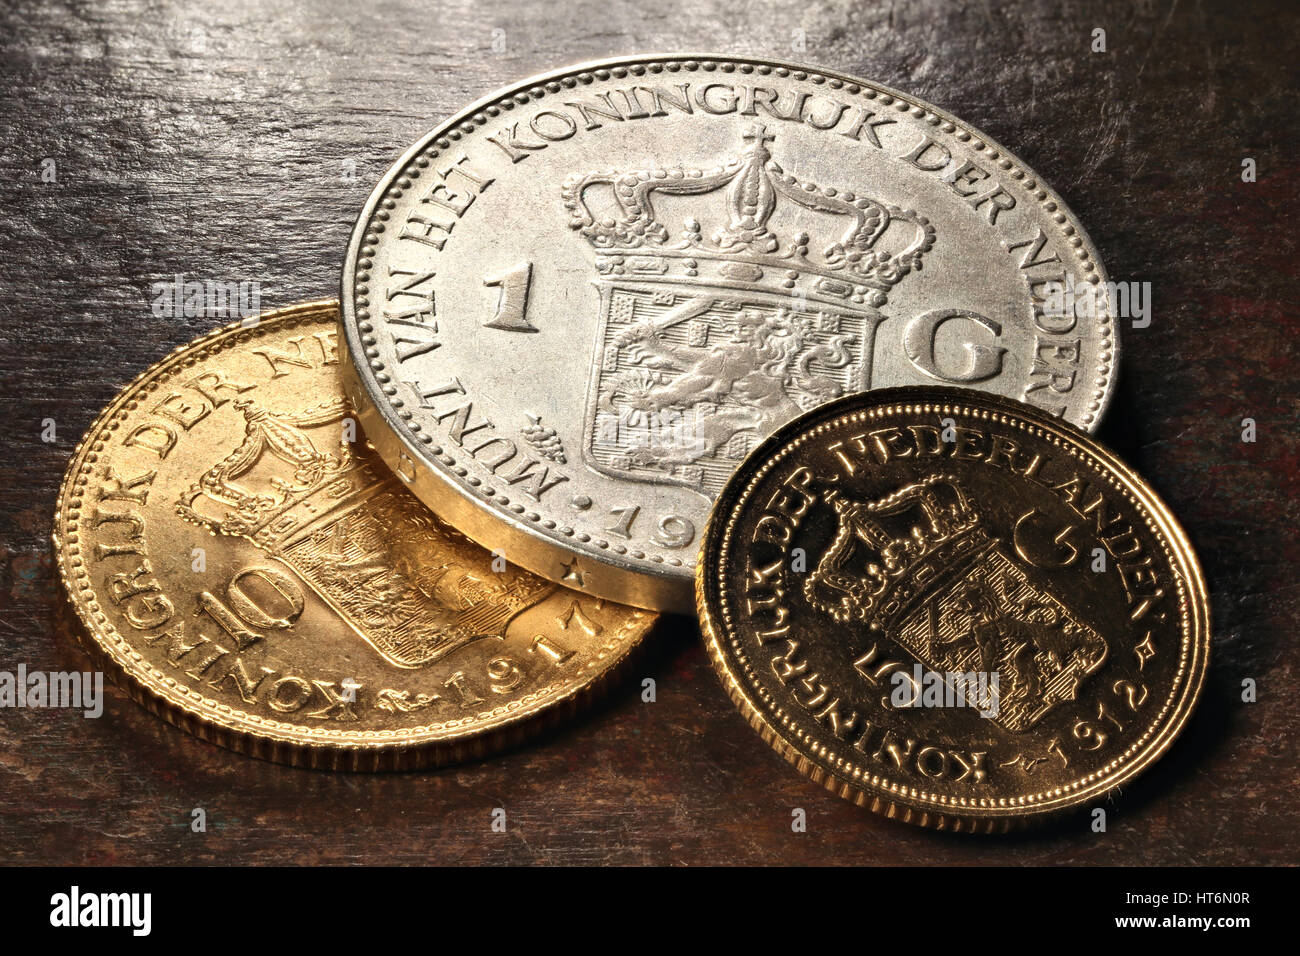 Dutch silver and gold coins on rustic wooden background - Stock Image